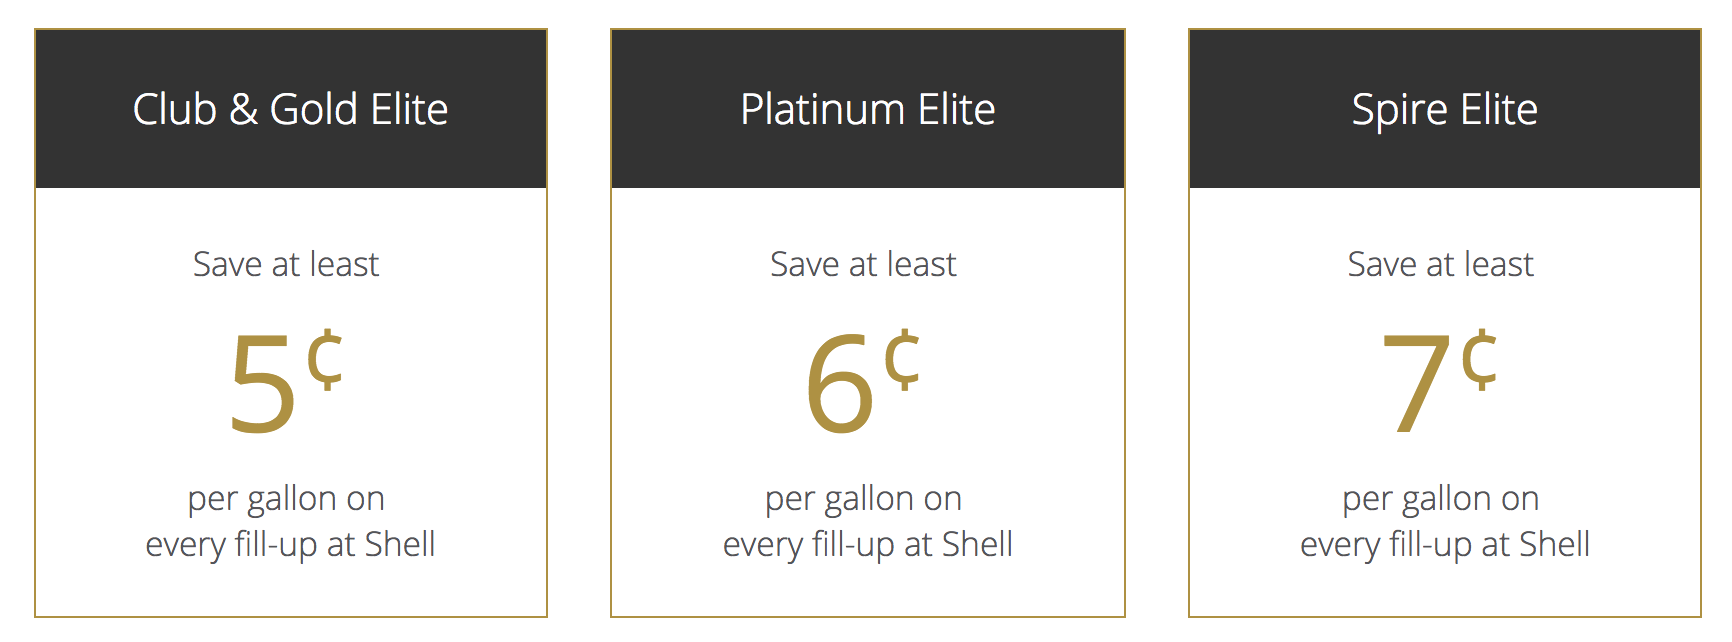 Save Up 32 Cents Per Gallon With This Ihg Hotels Promotion